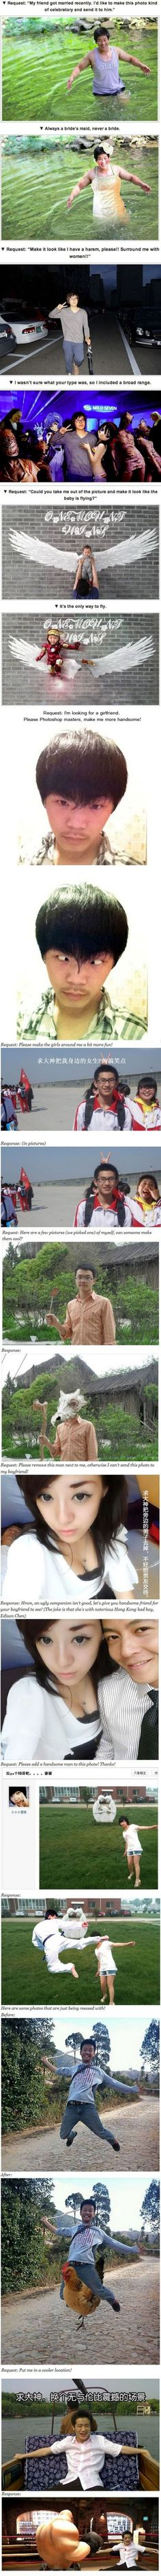 Chinese Photoshop masters delivering gloriously